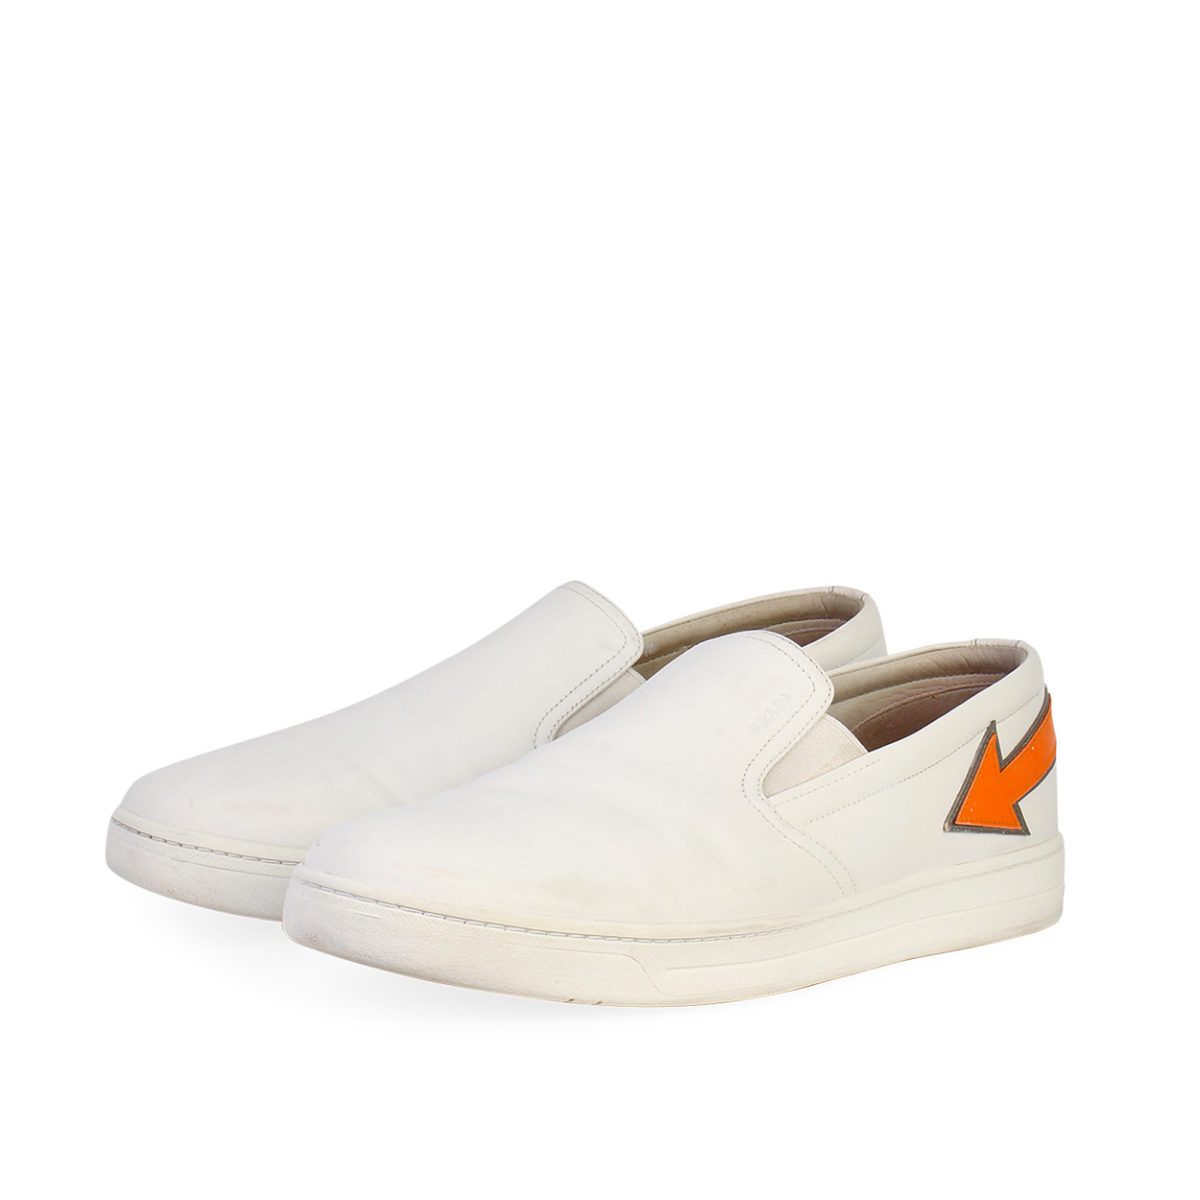 huge selection of 986f8 e7994 PRADA Leather Arrow Slip On Sneakers White - S: 43.5 (9.5)